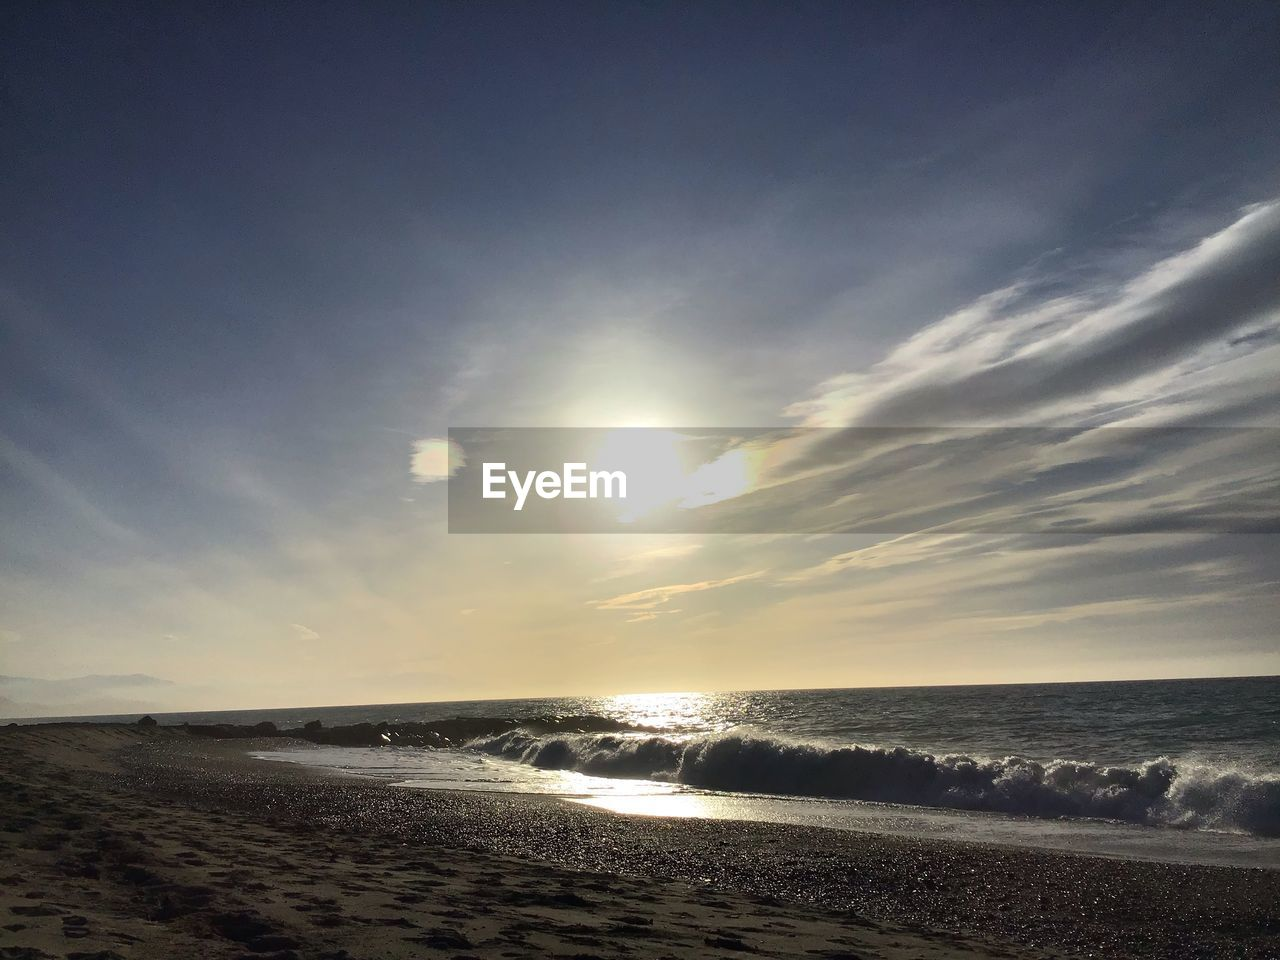 sea, water, sky, scenics - nature, beach, beauty in nature, land, horizon, horizon over water, cloud - sky, motion, wave, tranquil scene, tranquility, nature, sunset, no people, idyllic, sunlight, outdoors